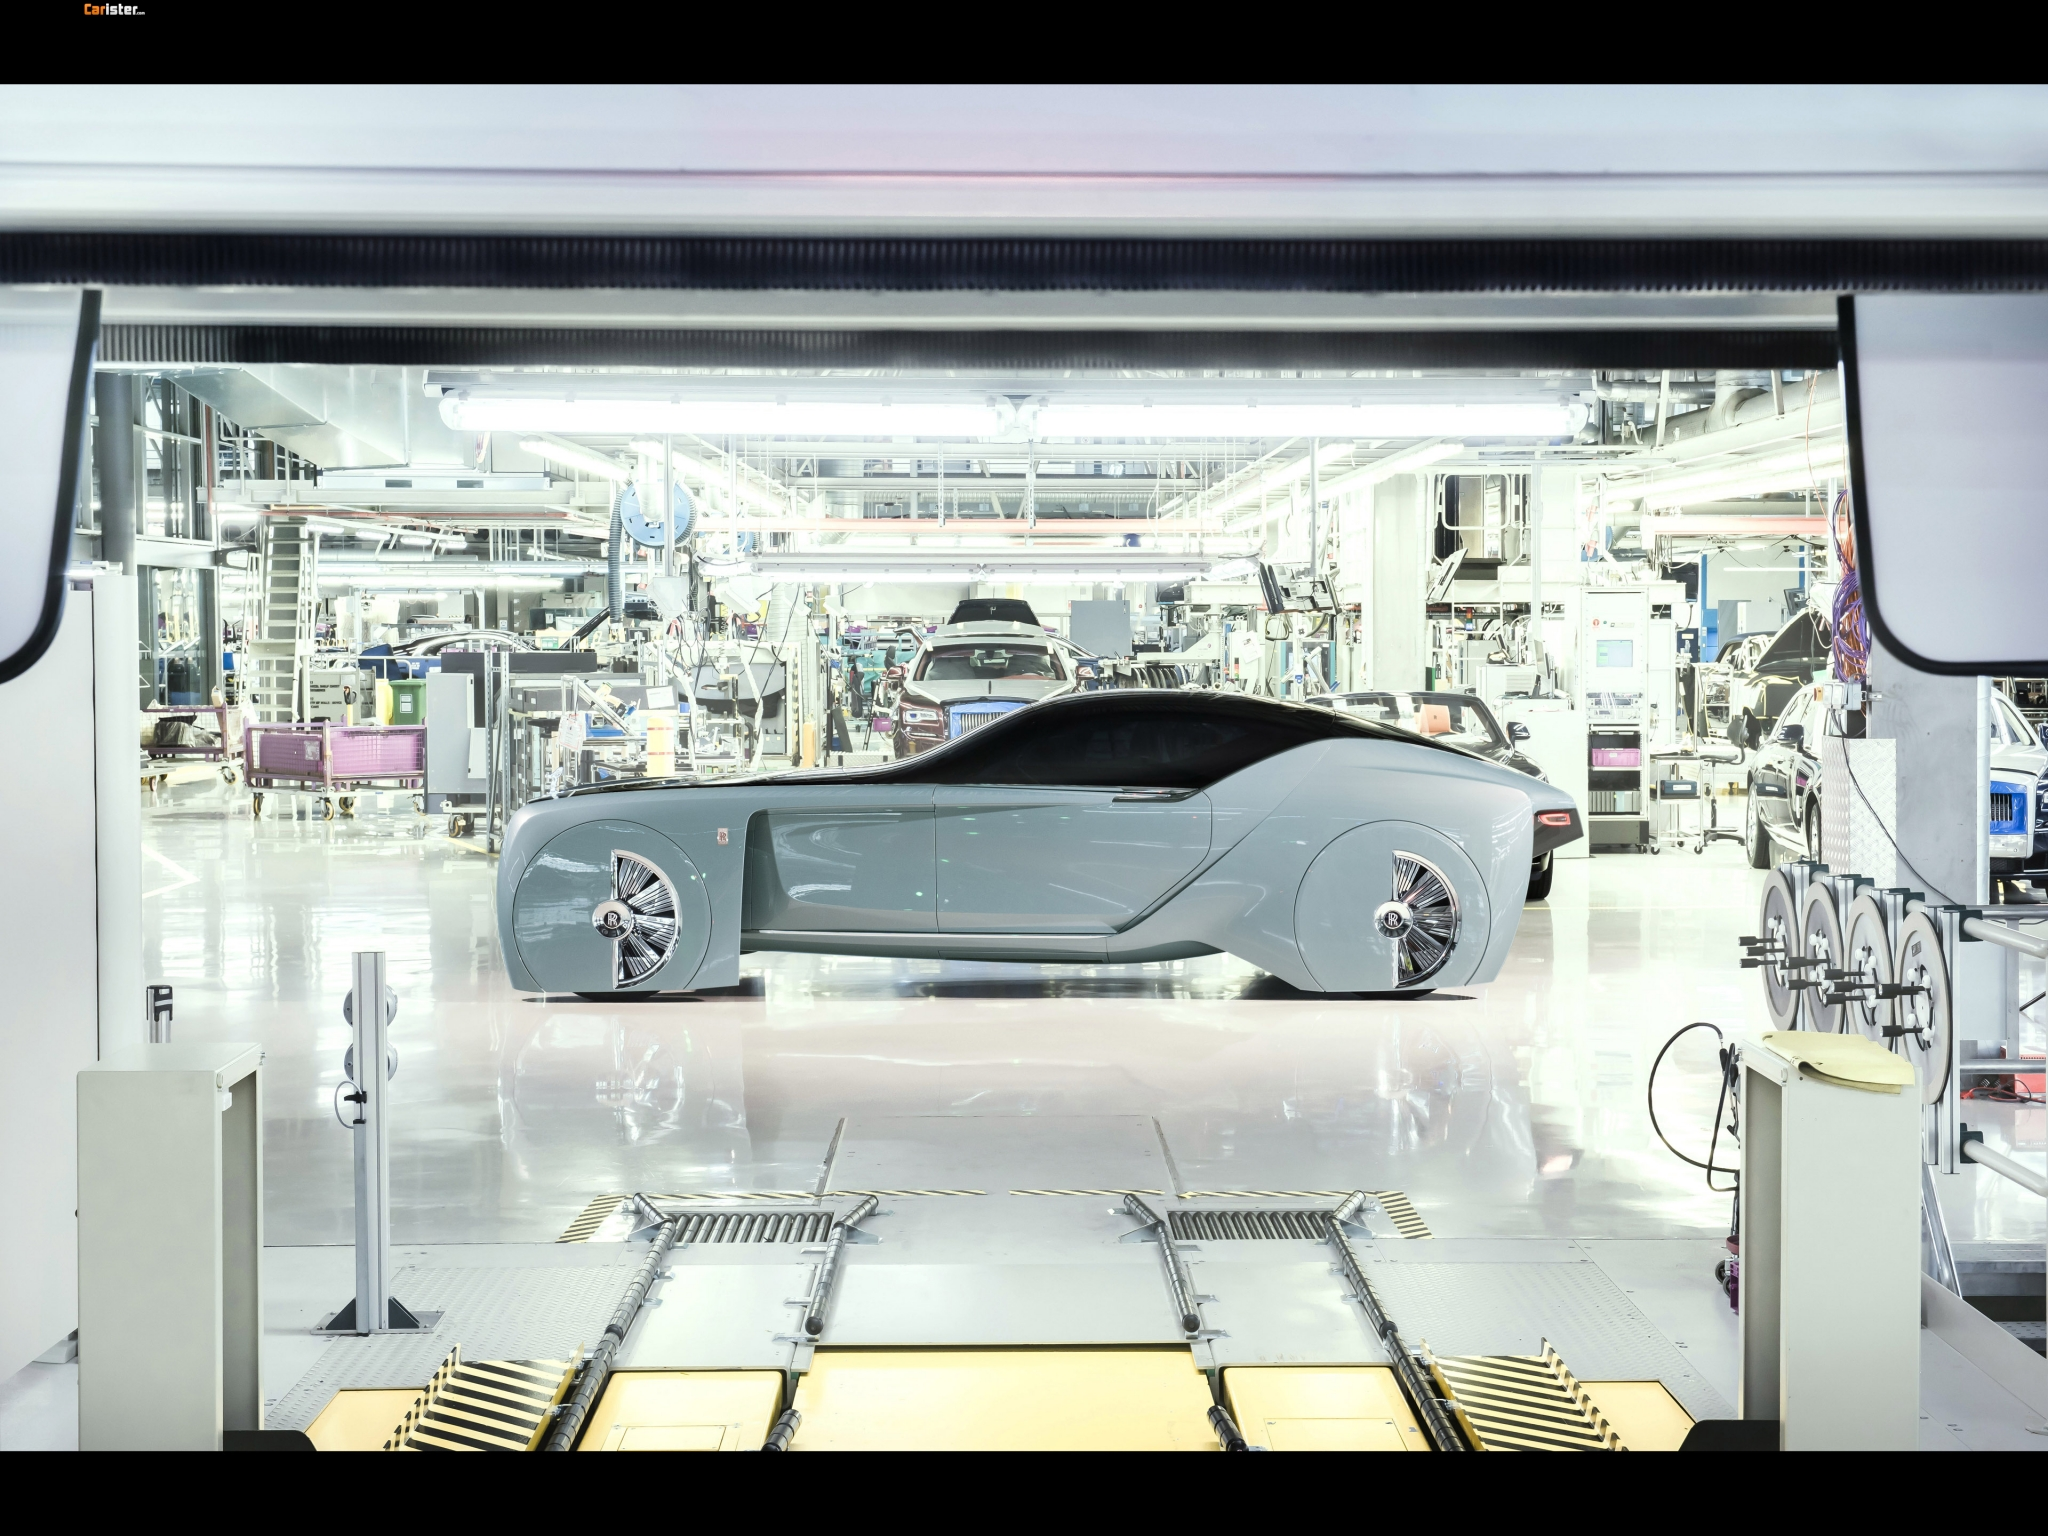 Rolls-Royce Vision Next 100 Concept 2016 - Photo 06 - Taille: 2048x1536